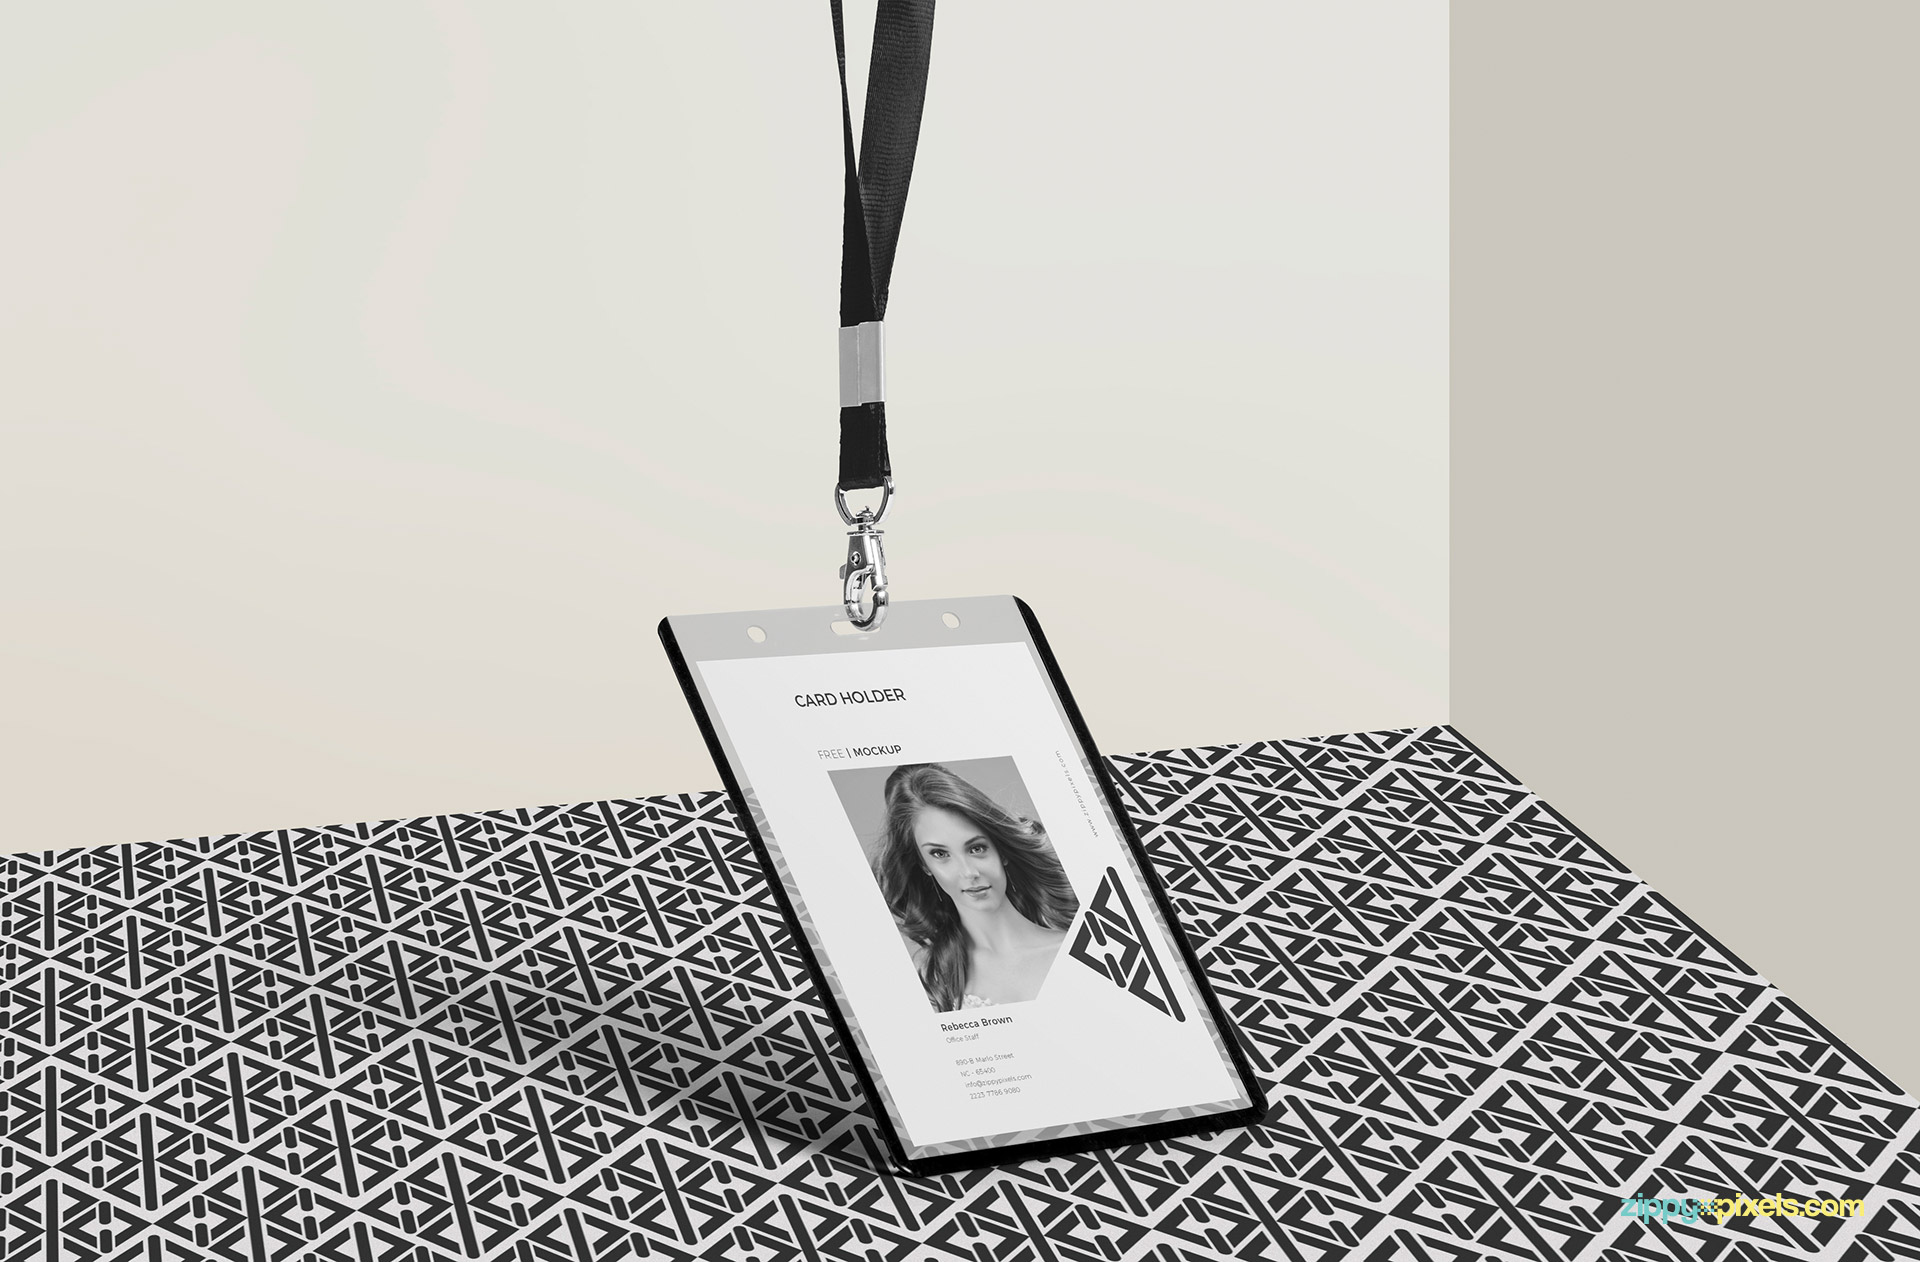 Customize background, walls and id card as per your requirement.